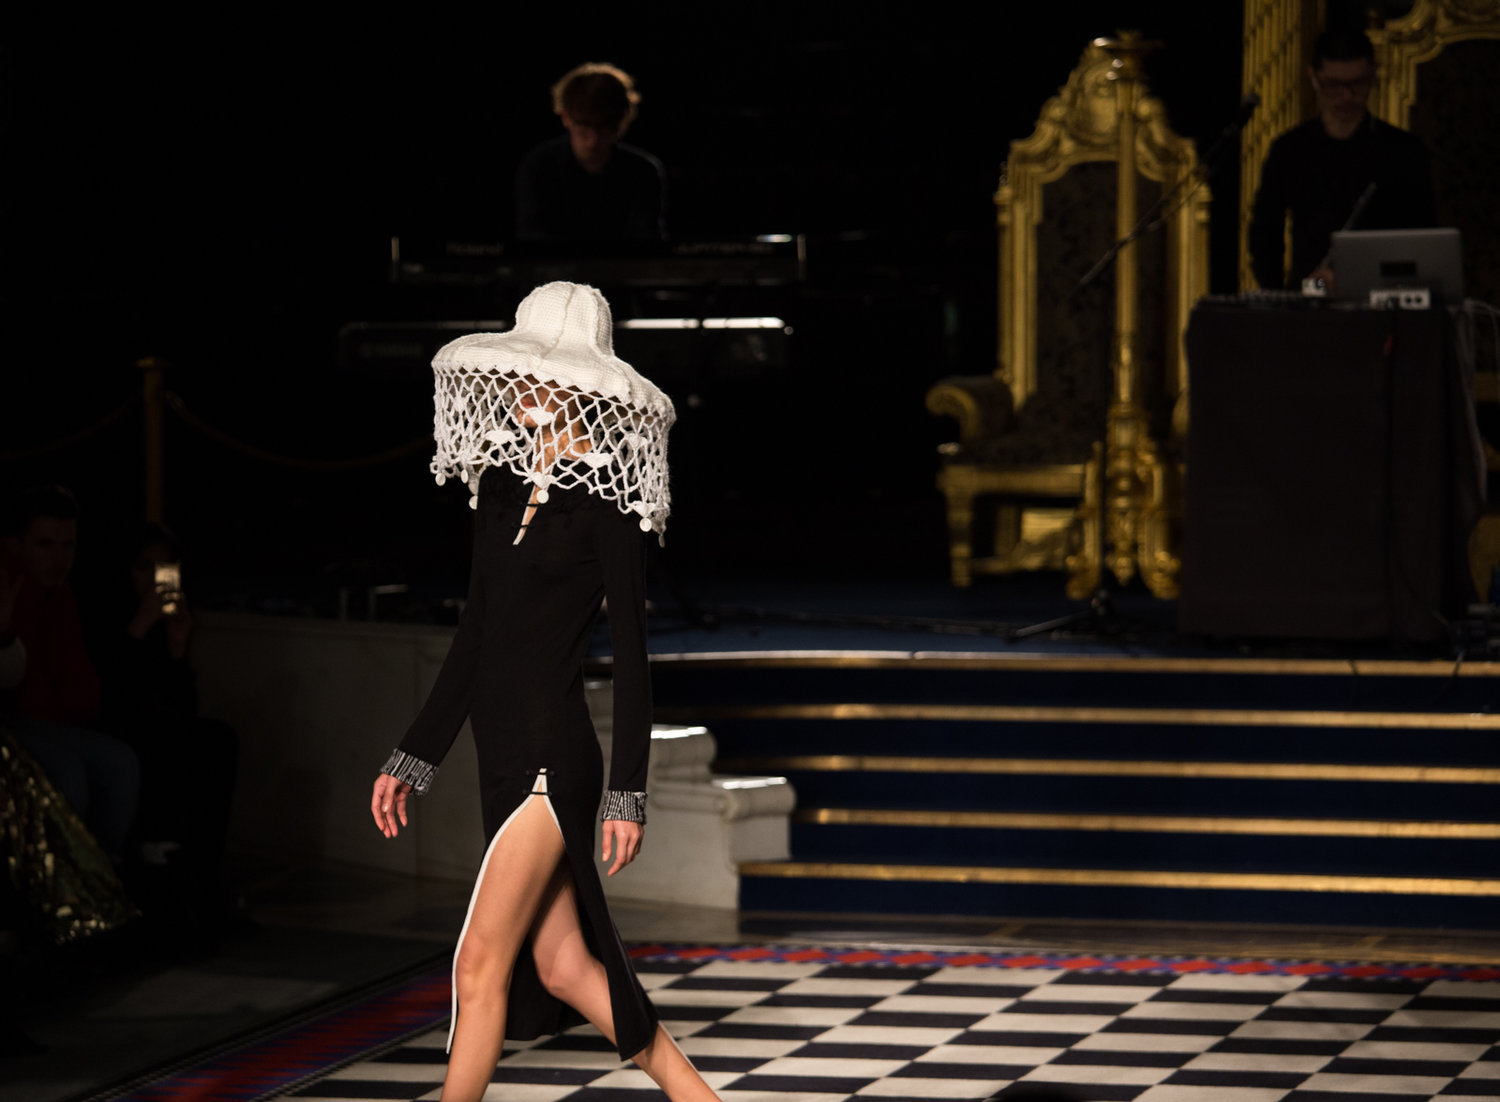 A still from the Apu Jan FW18 show at London Fashion Week in the grand temple of freemason's Hall